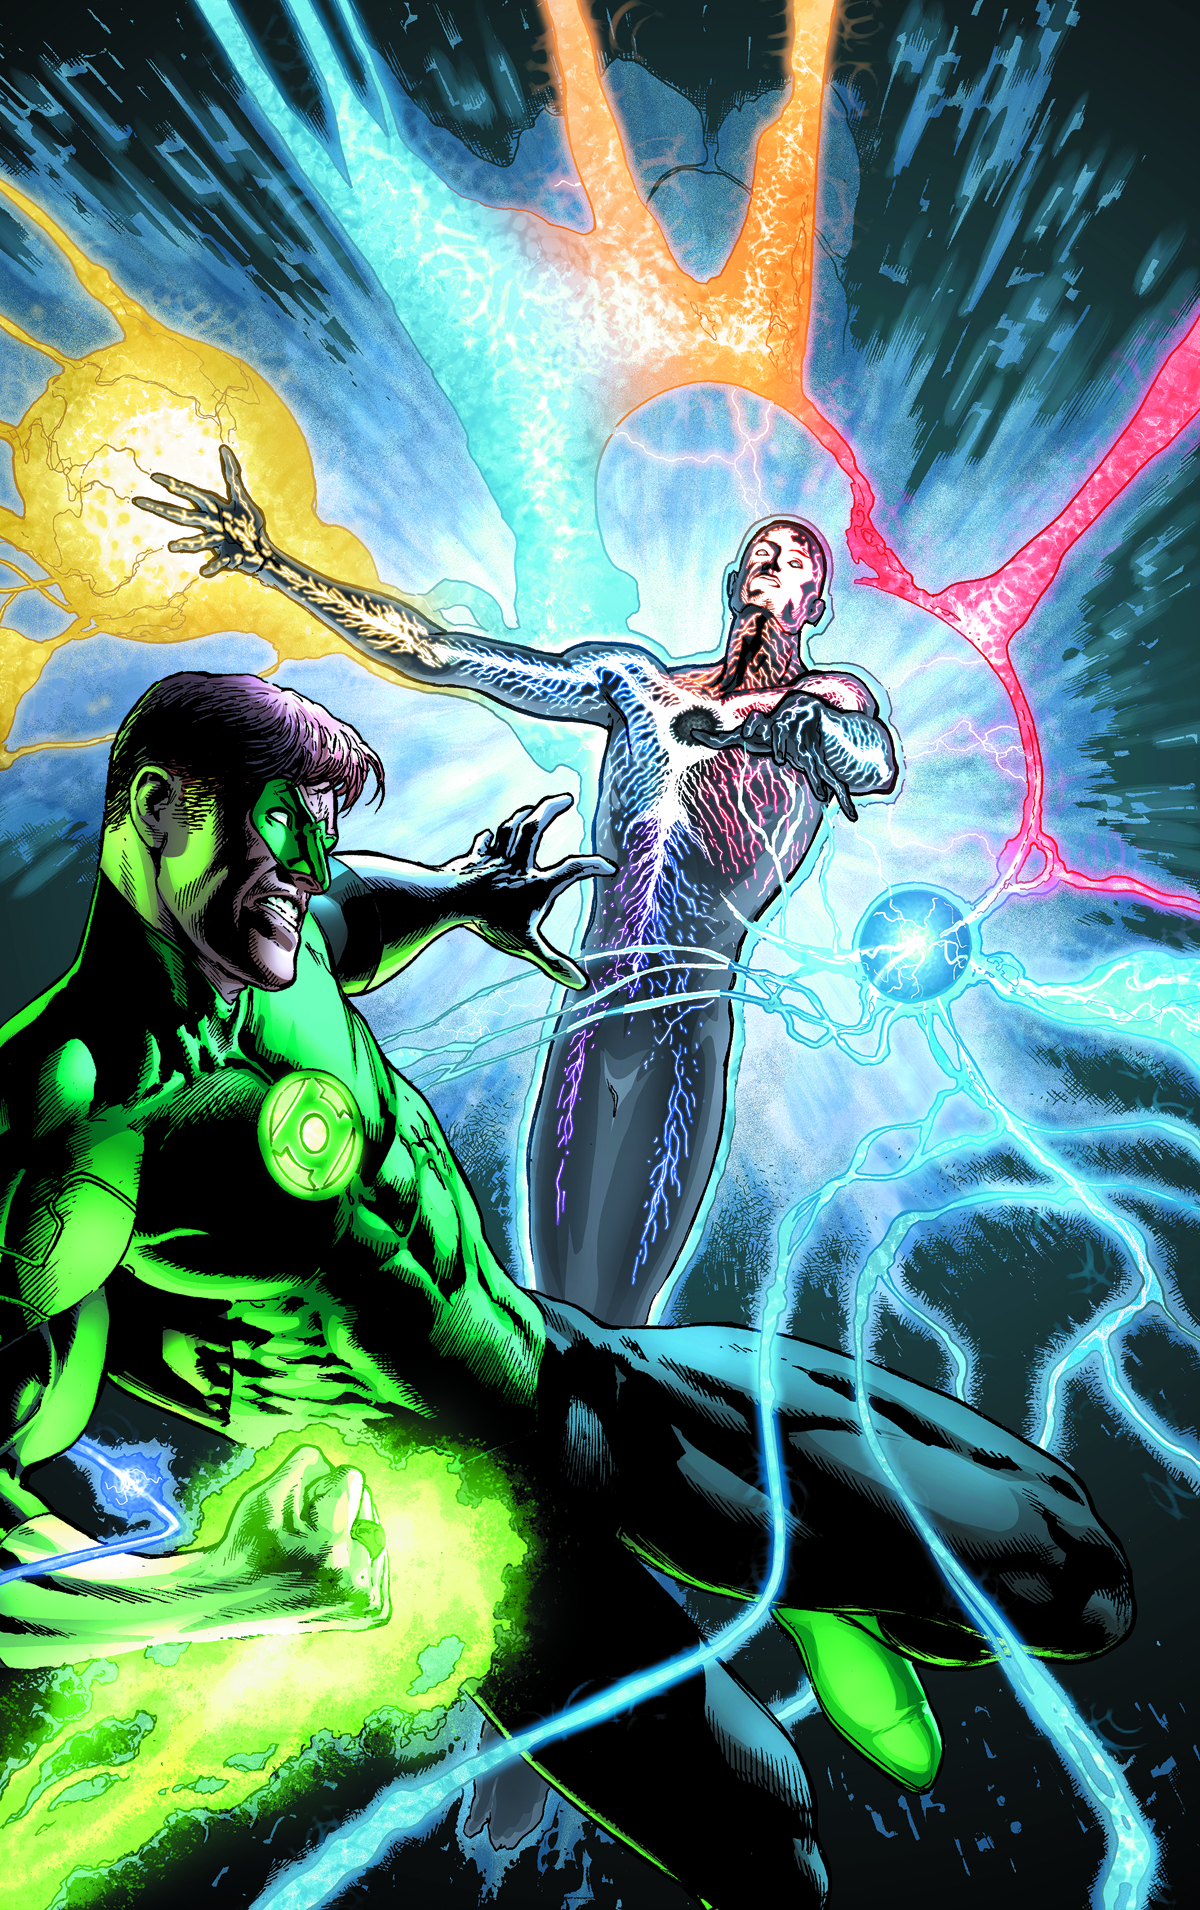 GREEN LANTERN #20 (WRATH)